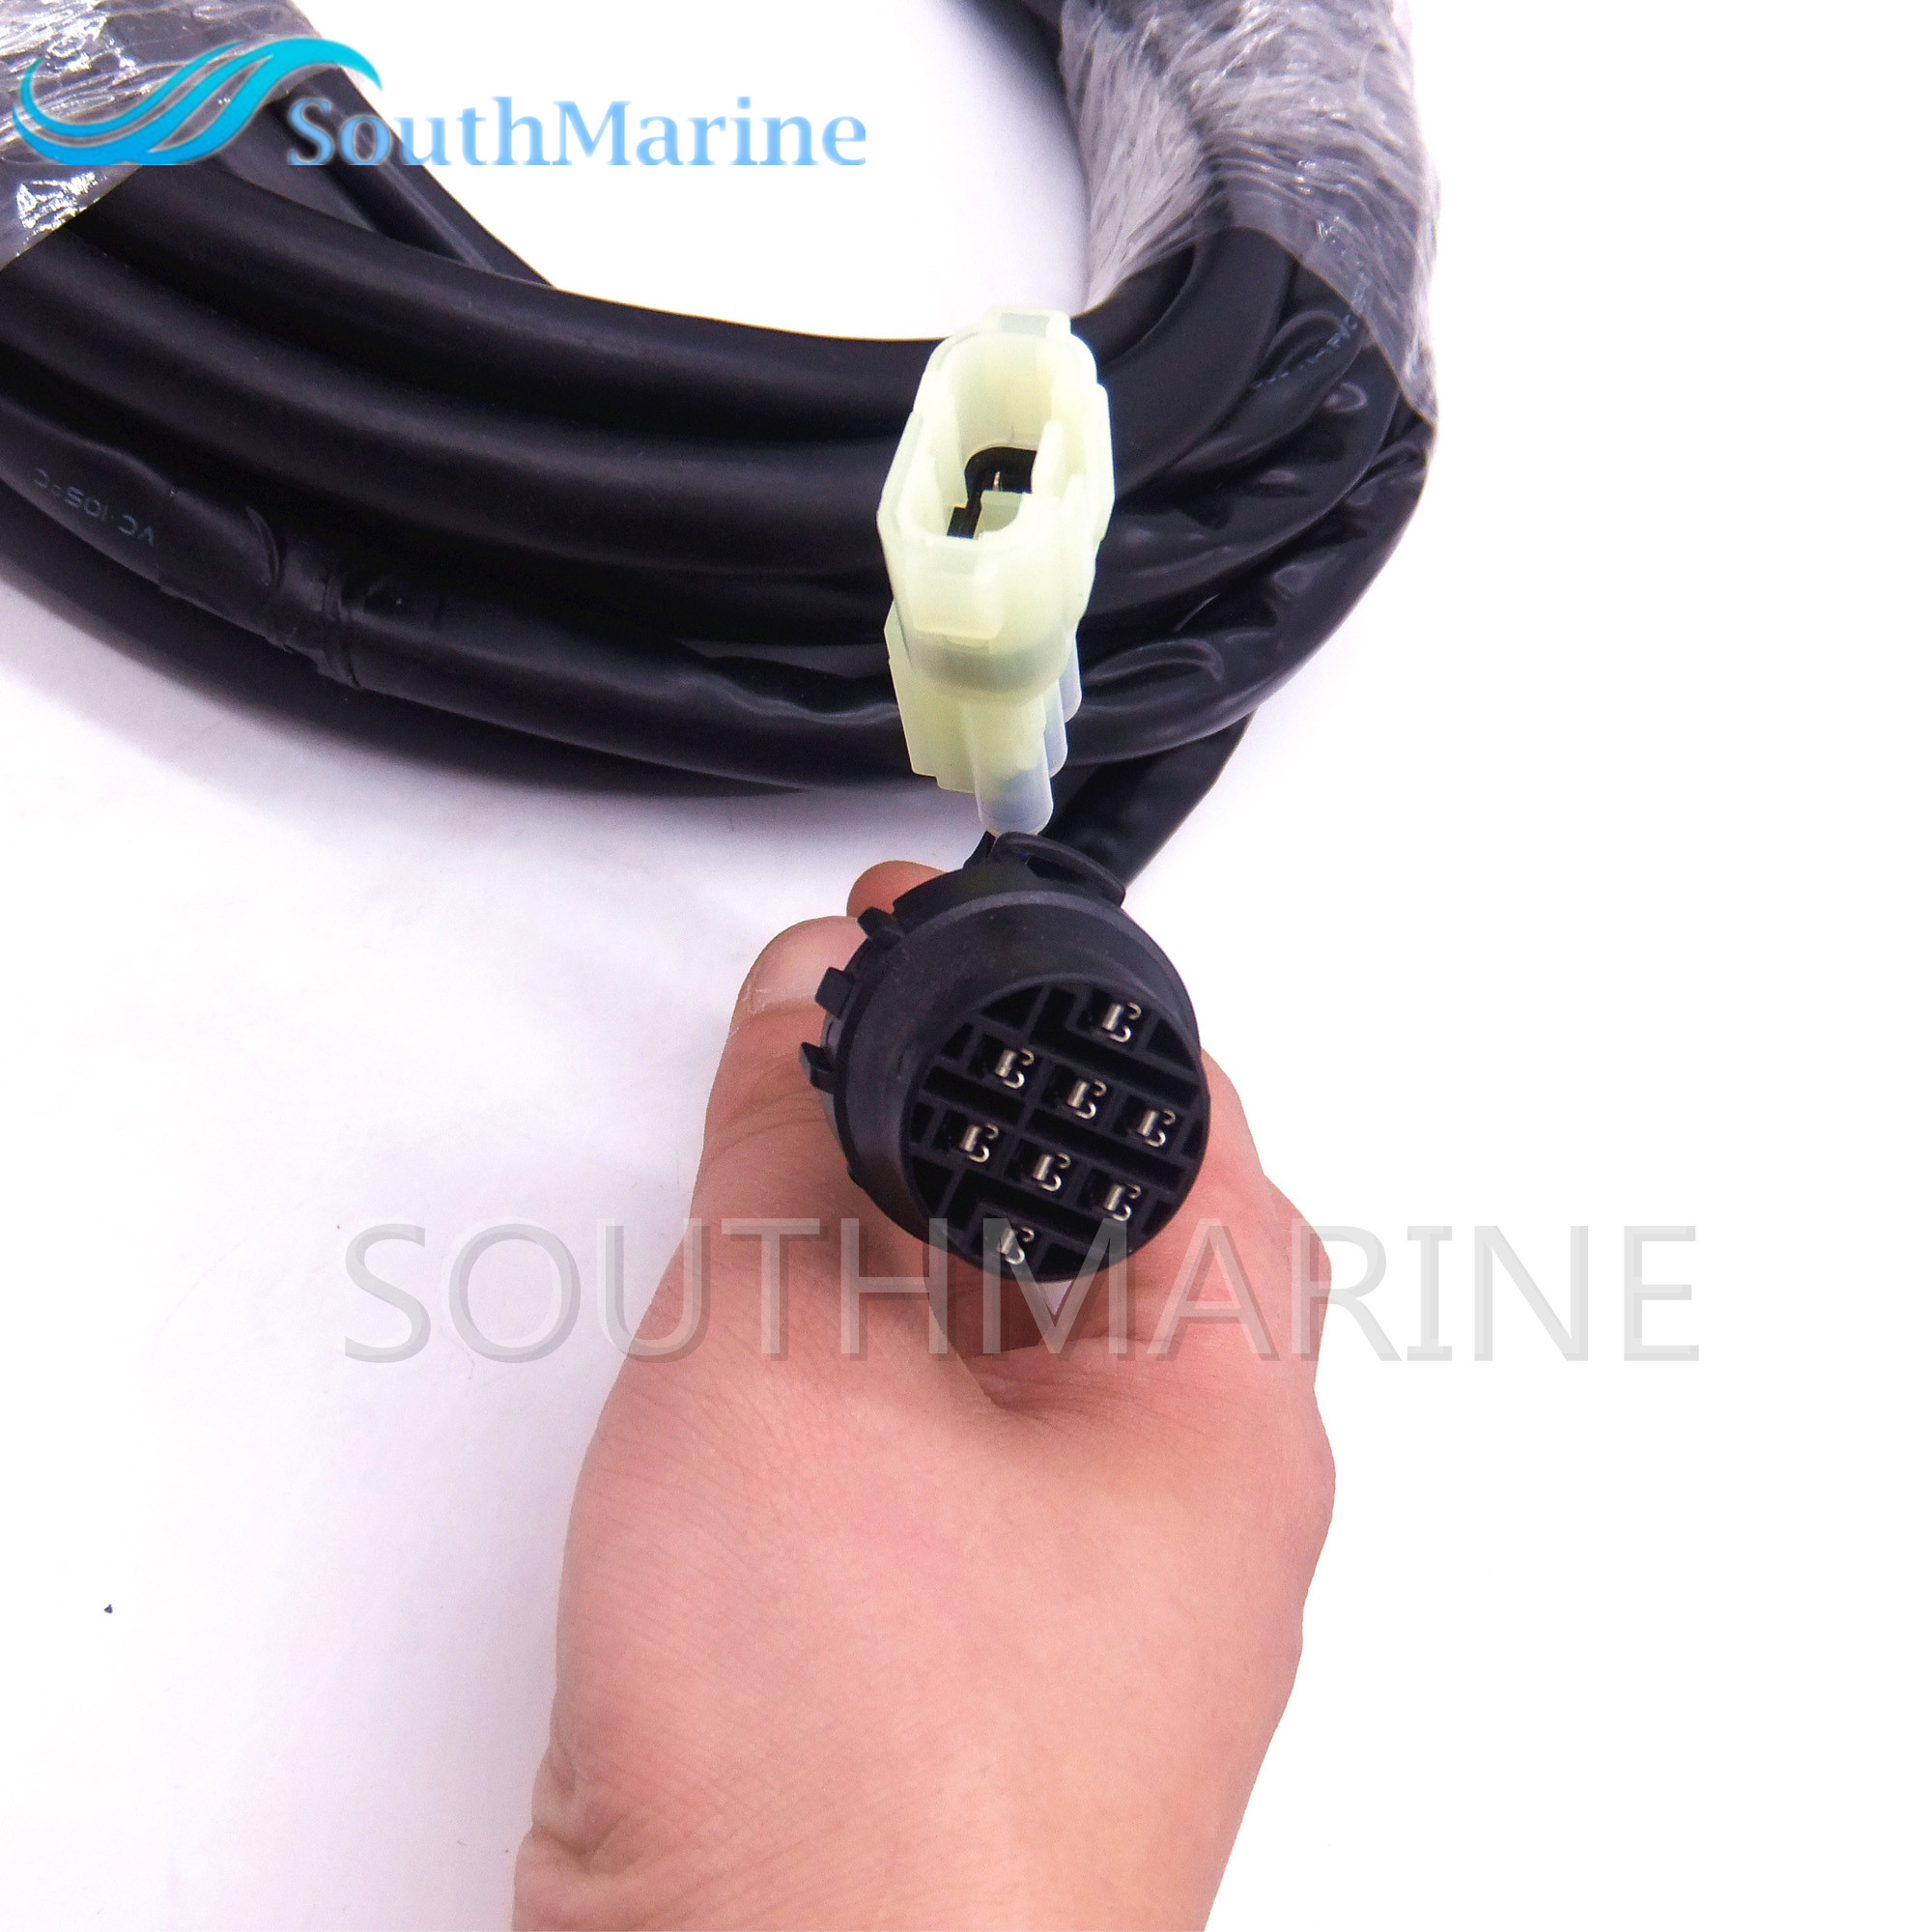 medium resolution of 36620 93j02 22 6ft main wiring harness for suzuki outboard motor remote control box with ptt 8p 6 9m